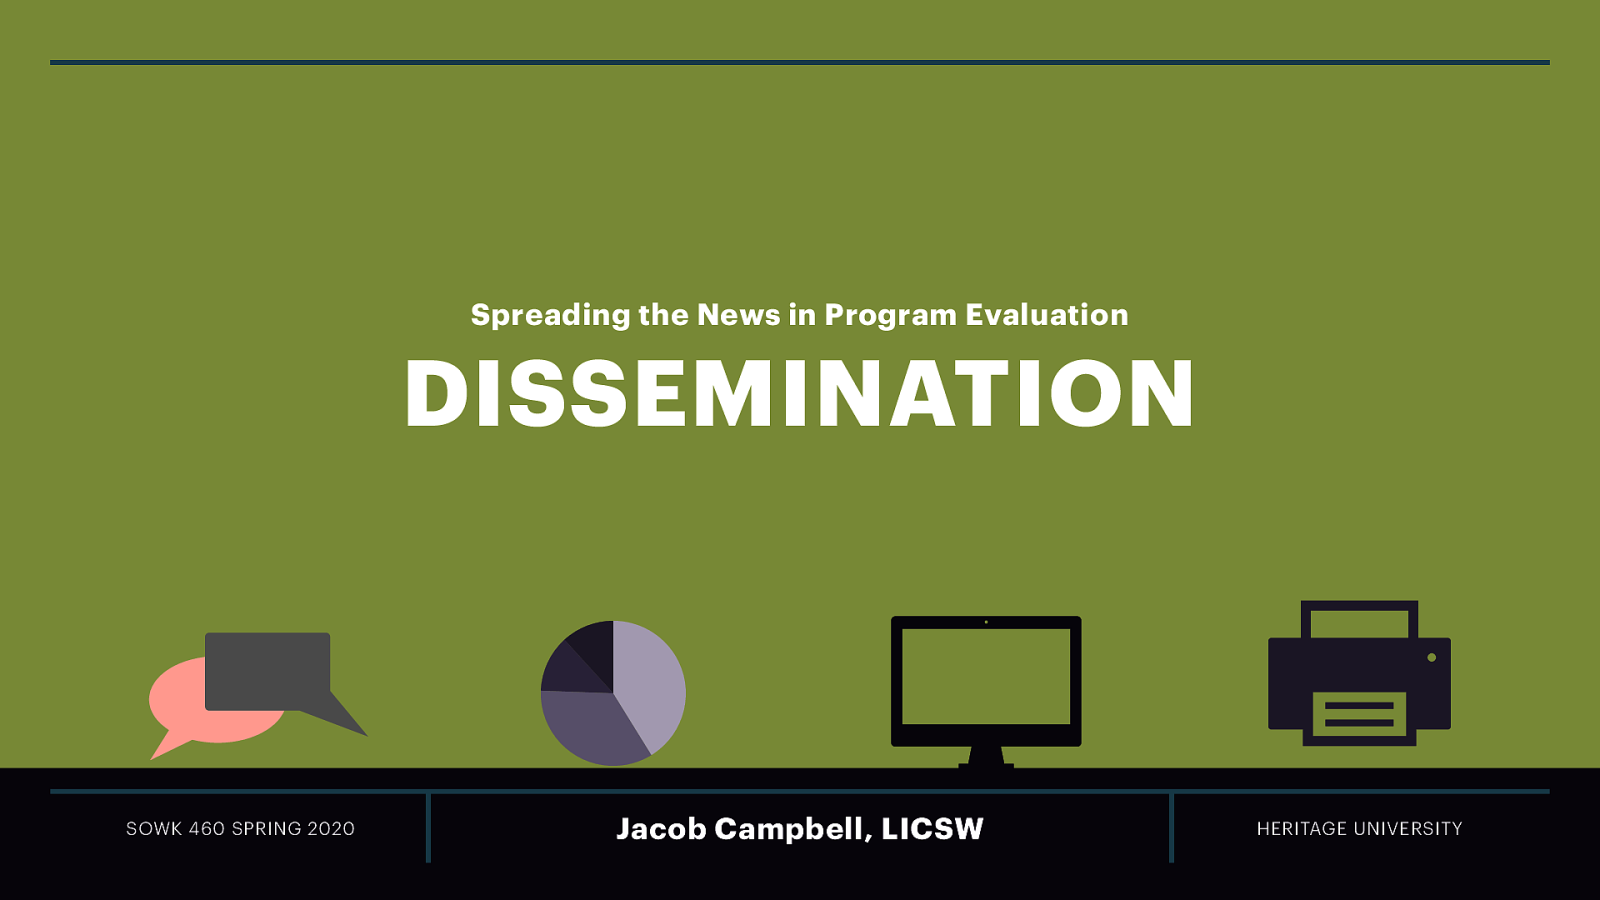 Week 15 - Dissemination - Spreading the News in Program Evaluation